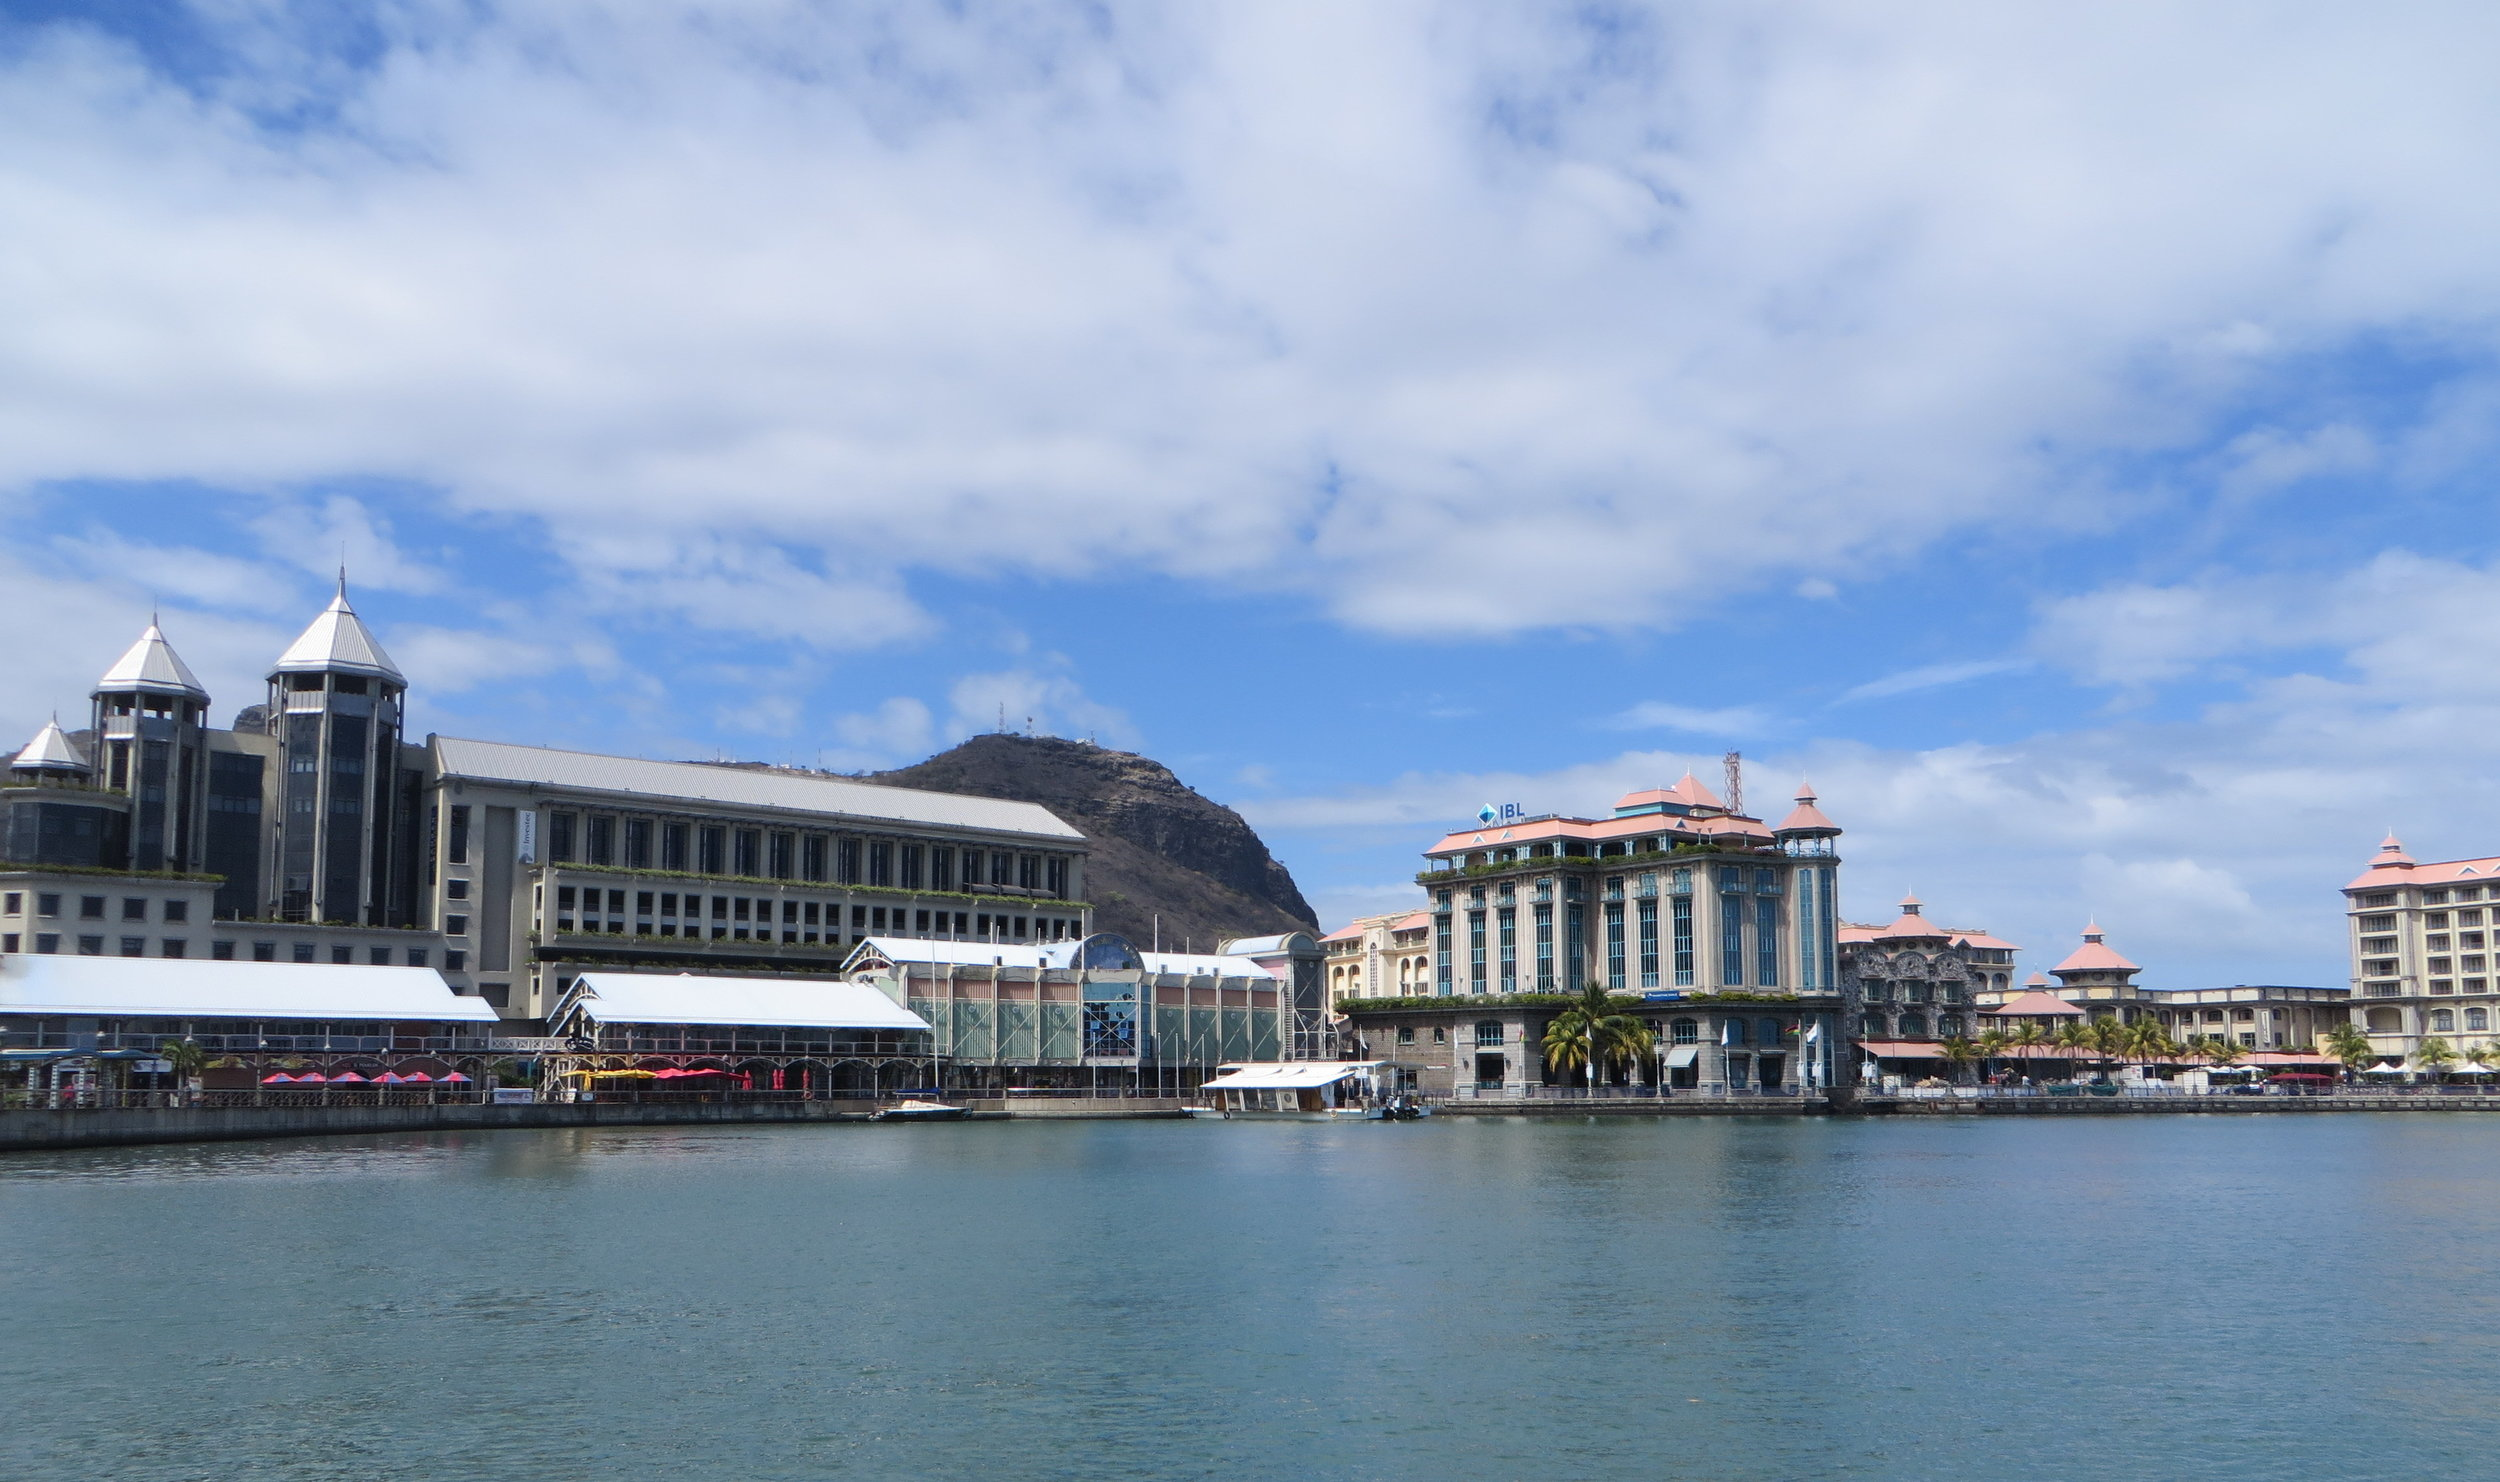 A view of the Port Louis Promenade as we arrived. Welcome to Mauritius.